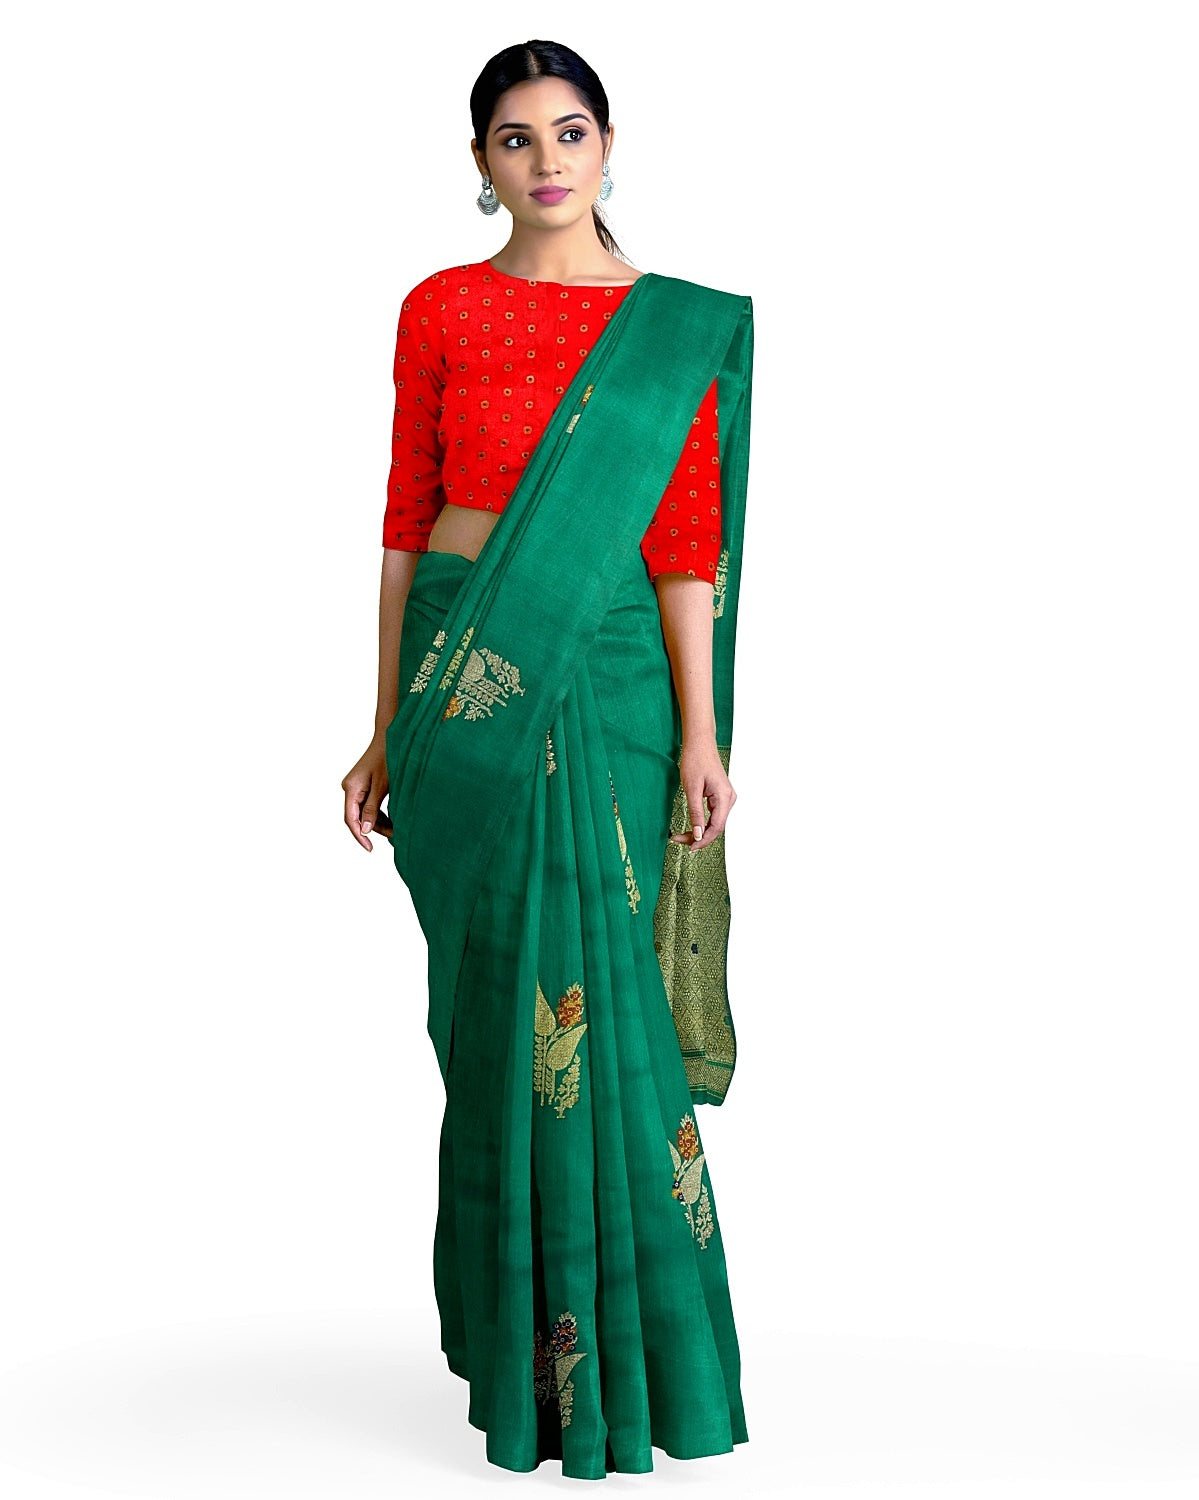 Bottle Green Matka Georgette Booti Saree